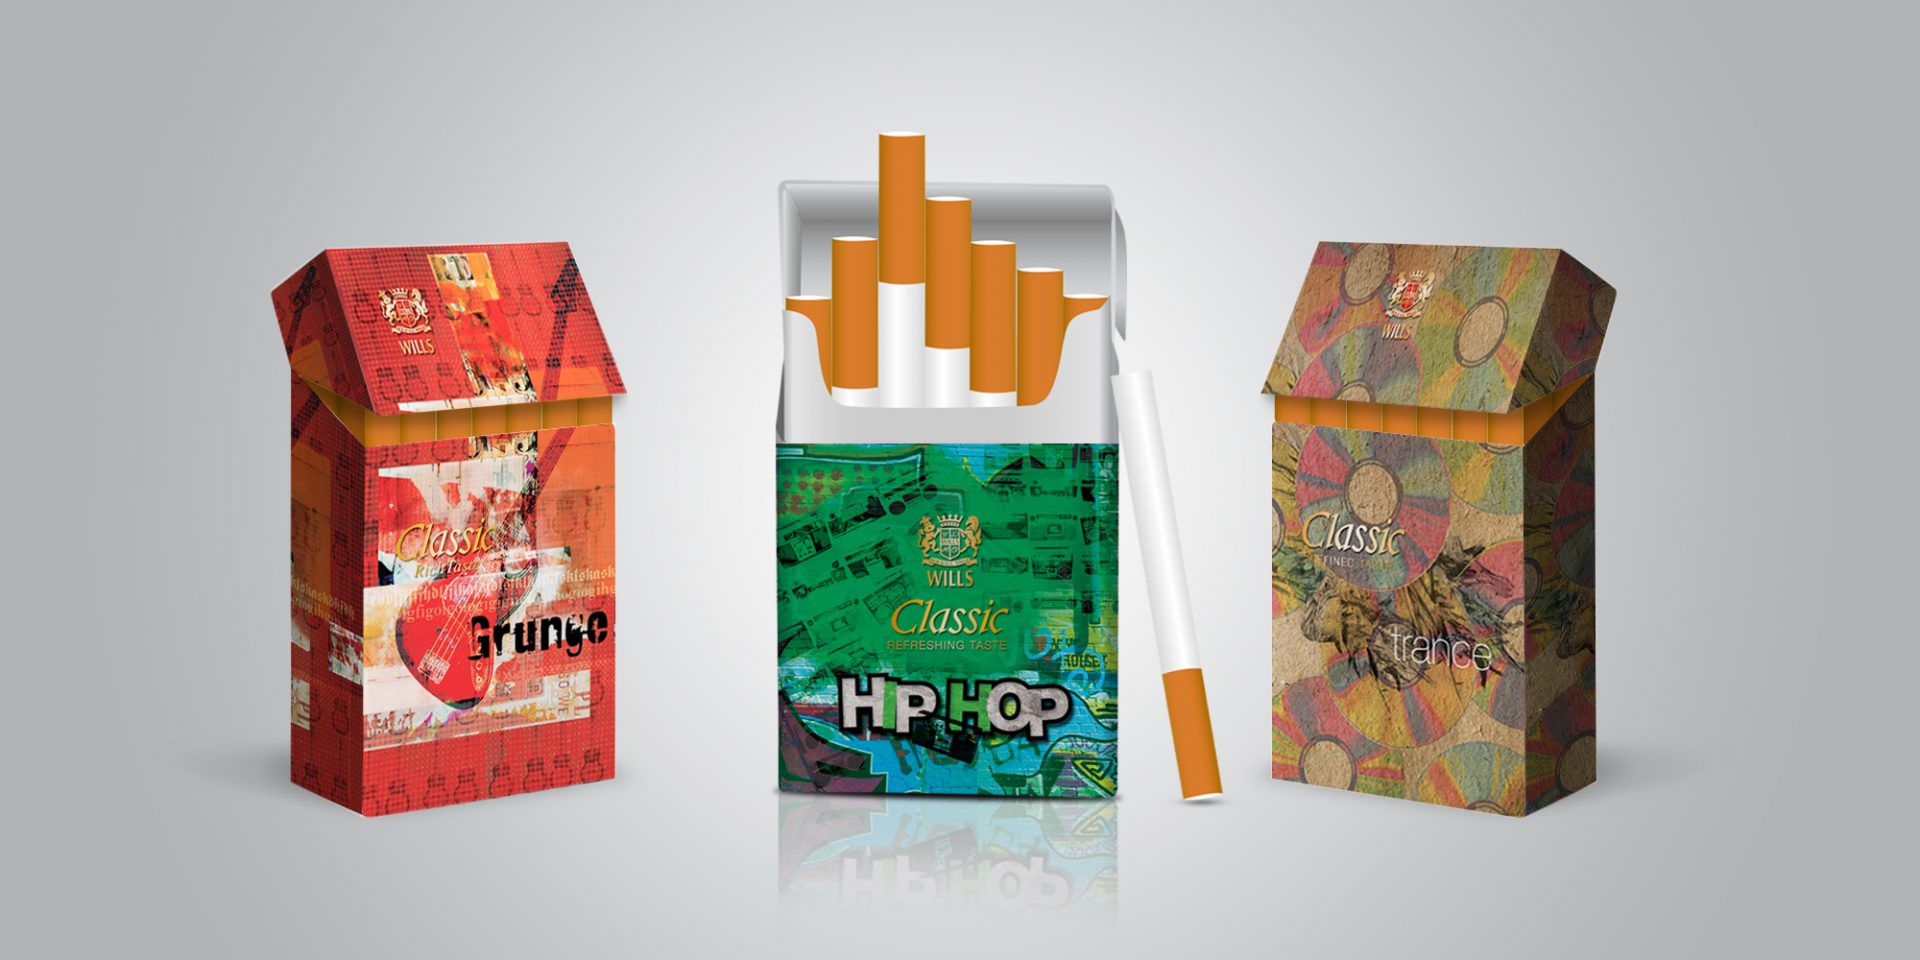 ITC Classic Cigarette Pack Designs